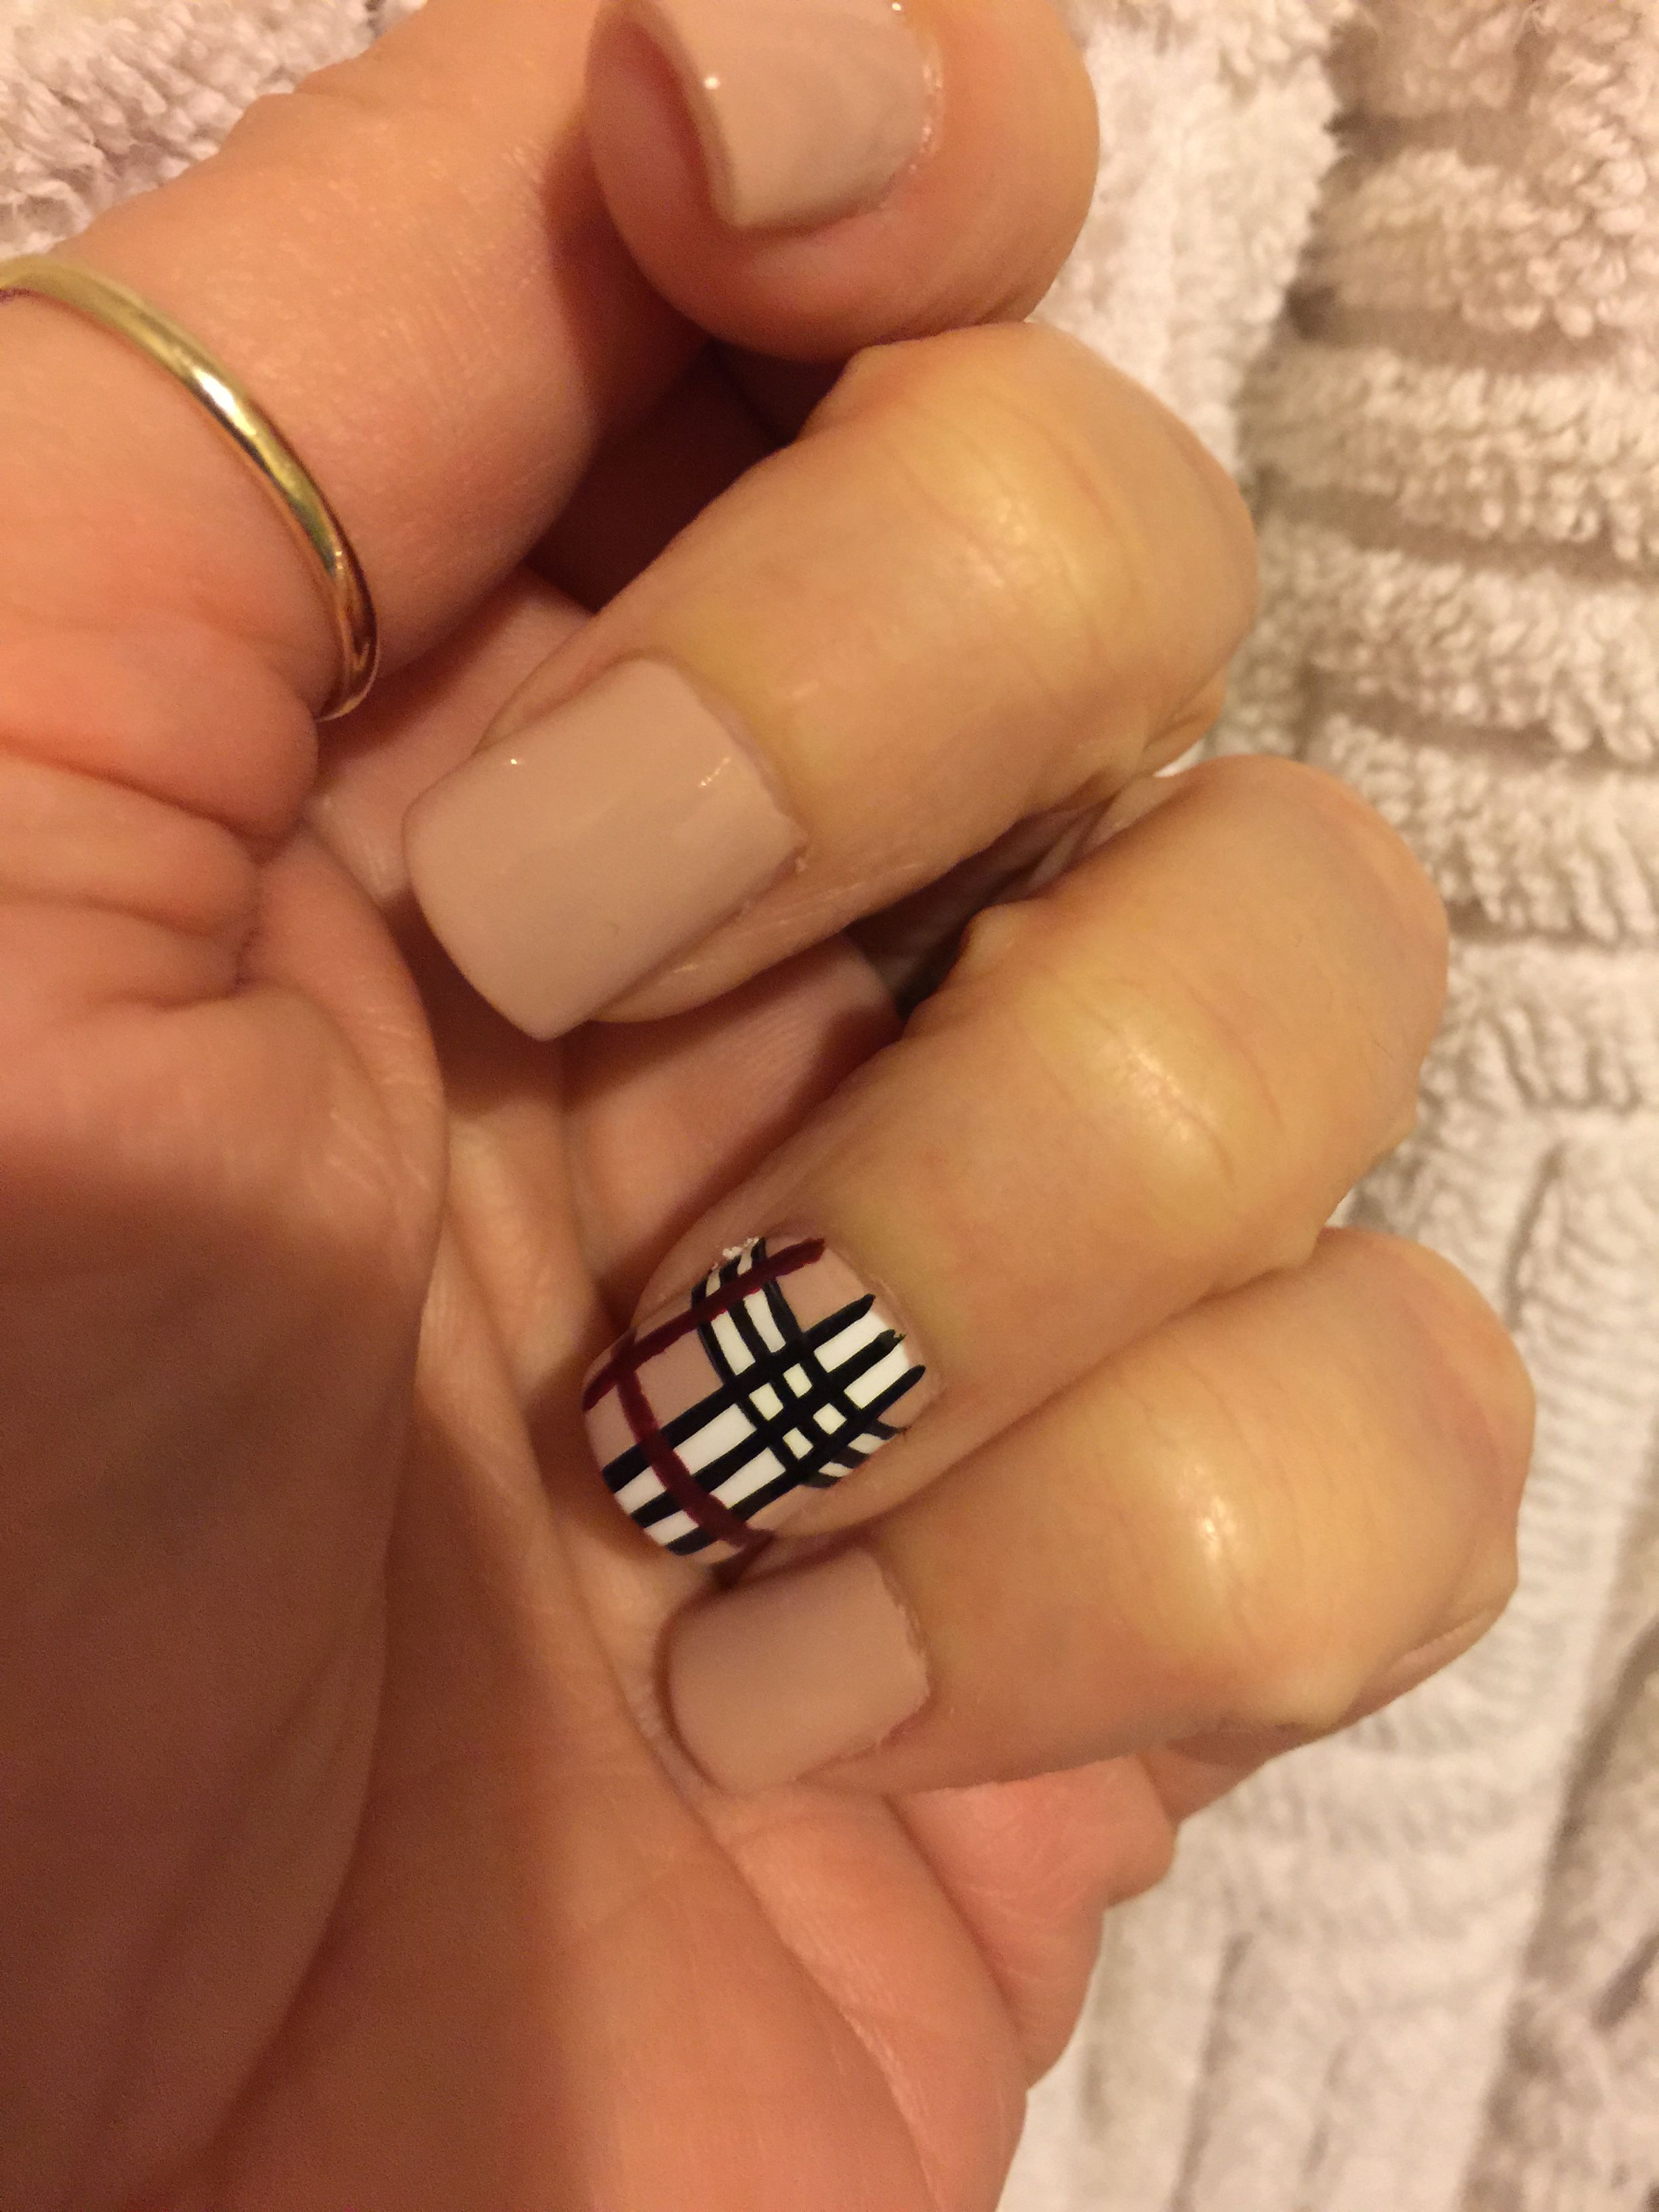 Burberry nails 11-18-15 | Nails | Pinterest | Burberry y Cuadro